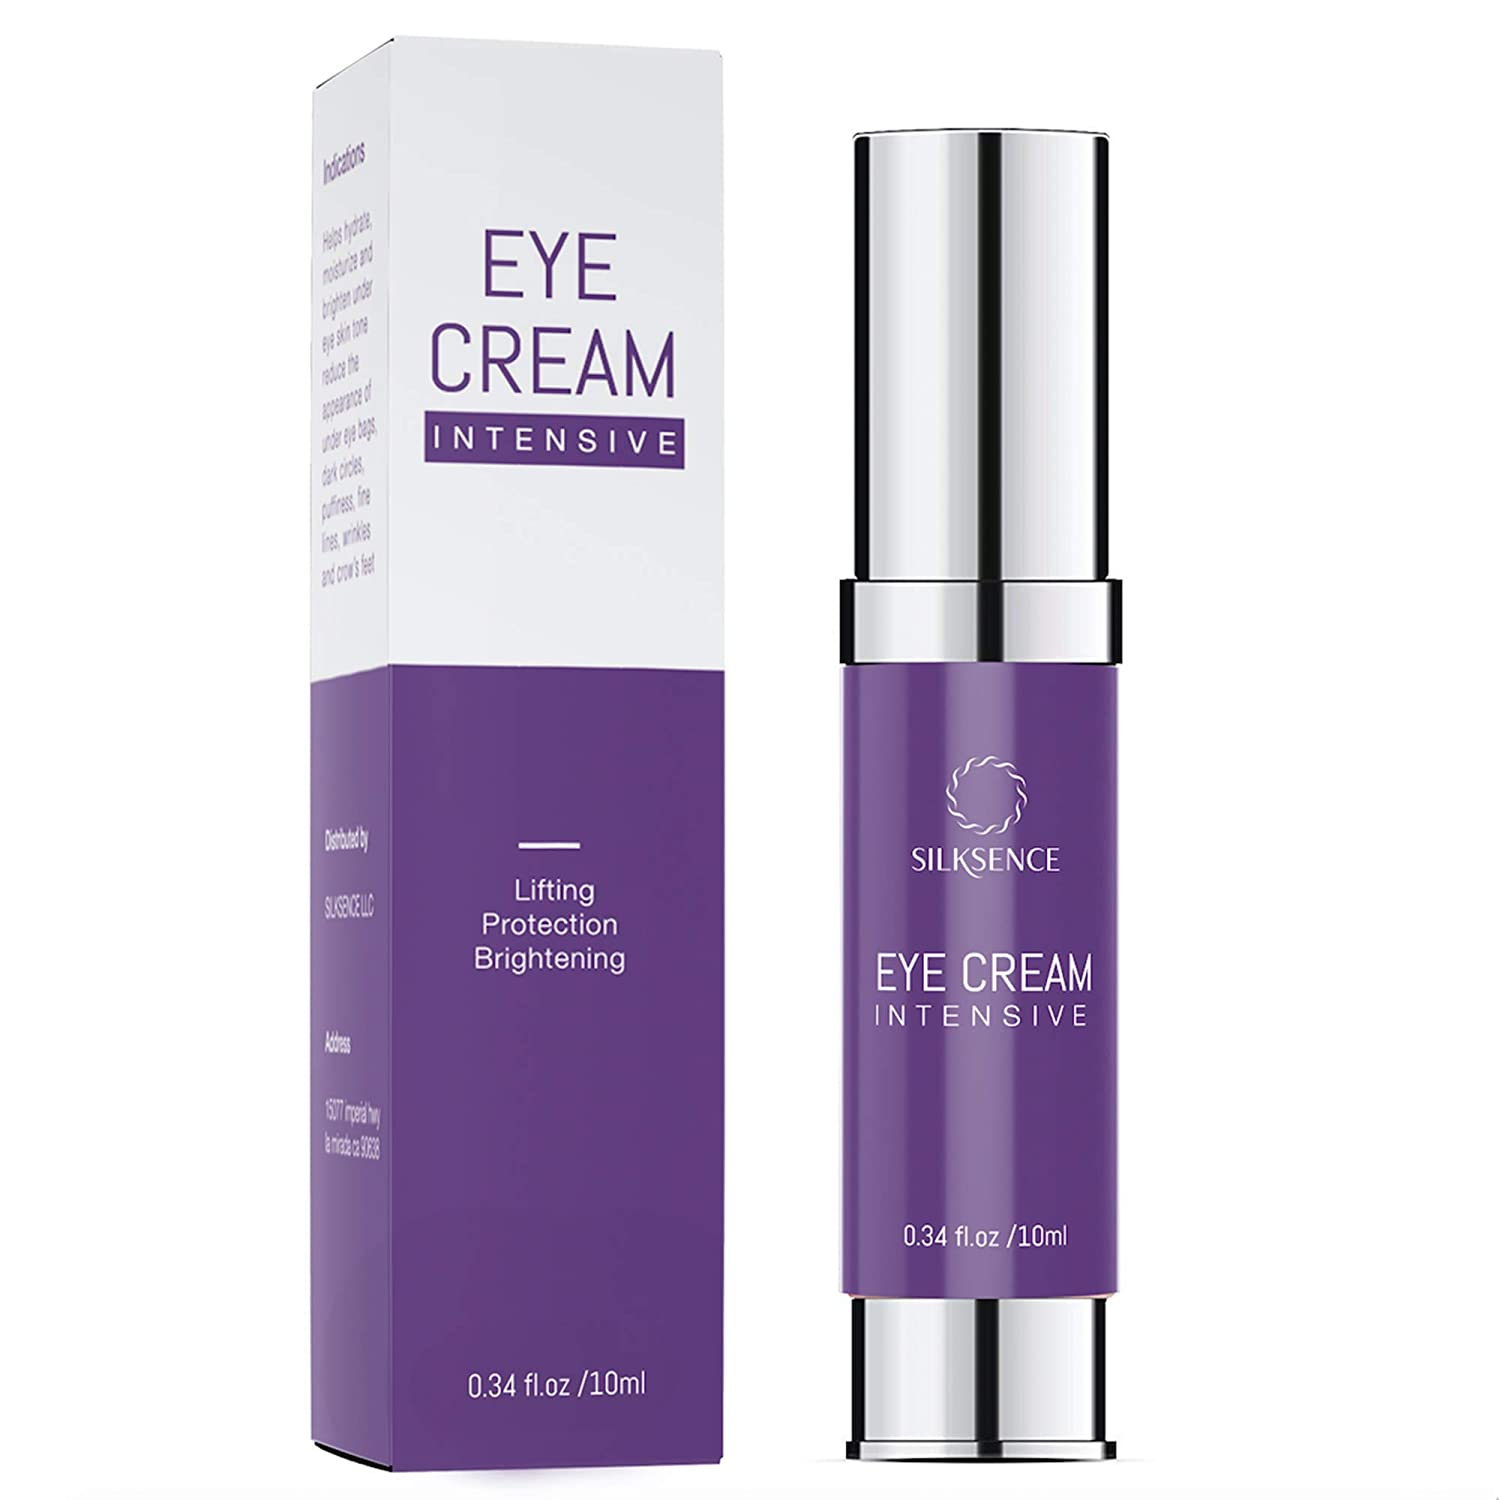 Anti-Aging Intensive Eye Cream - Rapid Repair, Visibly Reduced Wrinkles, Under Eye Bags, Puffiness & Dark Circles in 3 mins